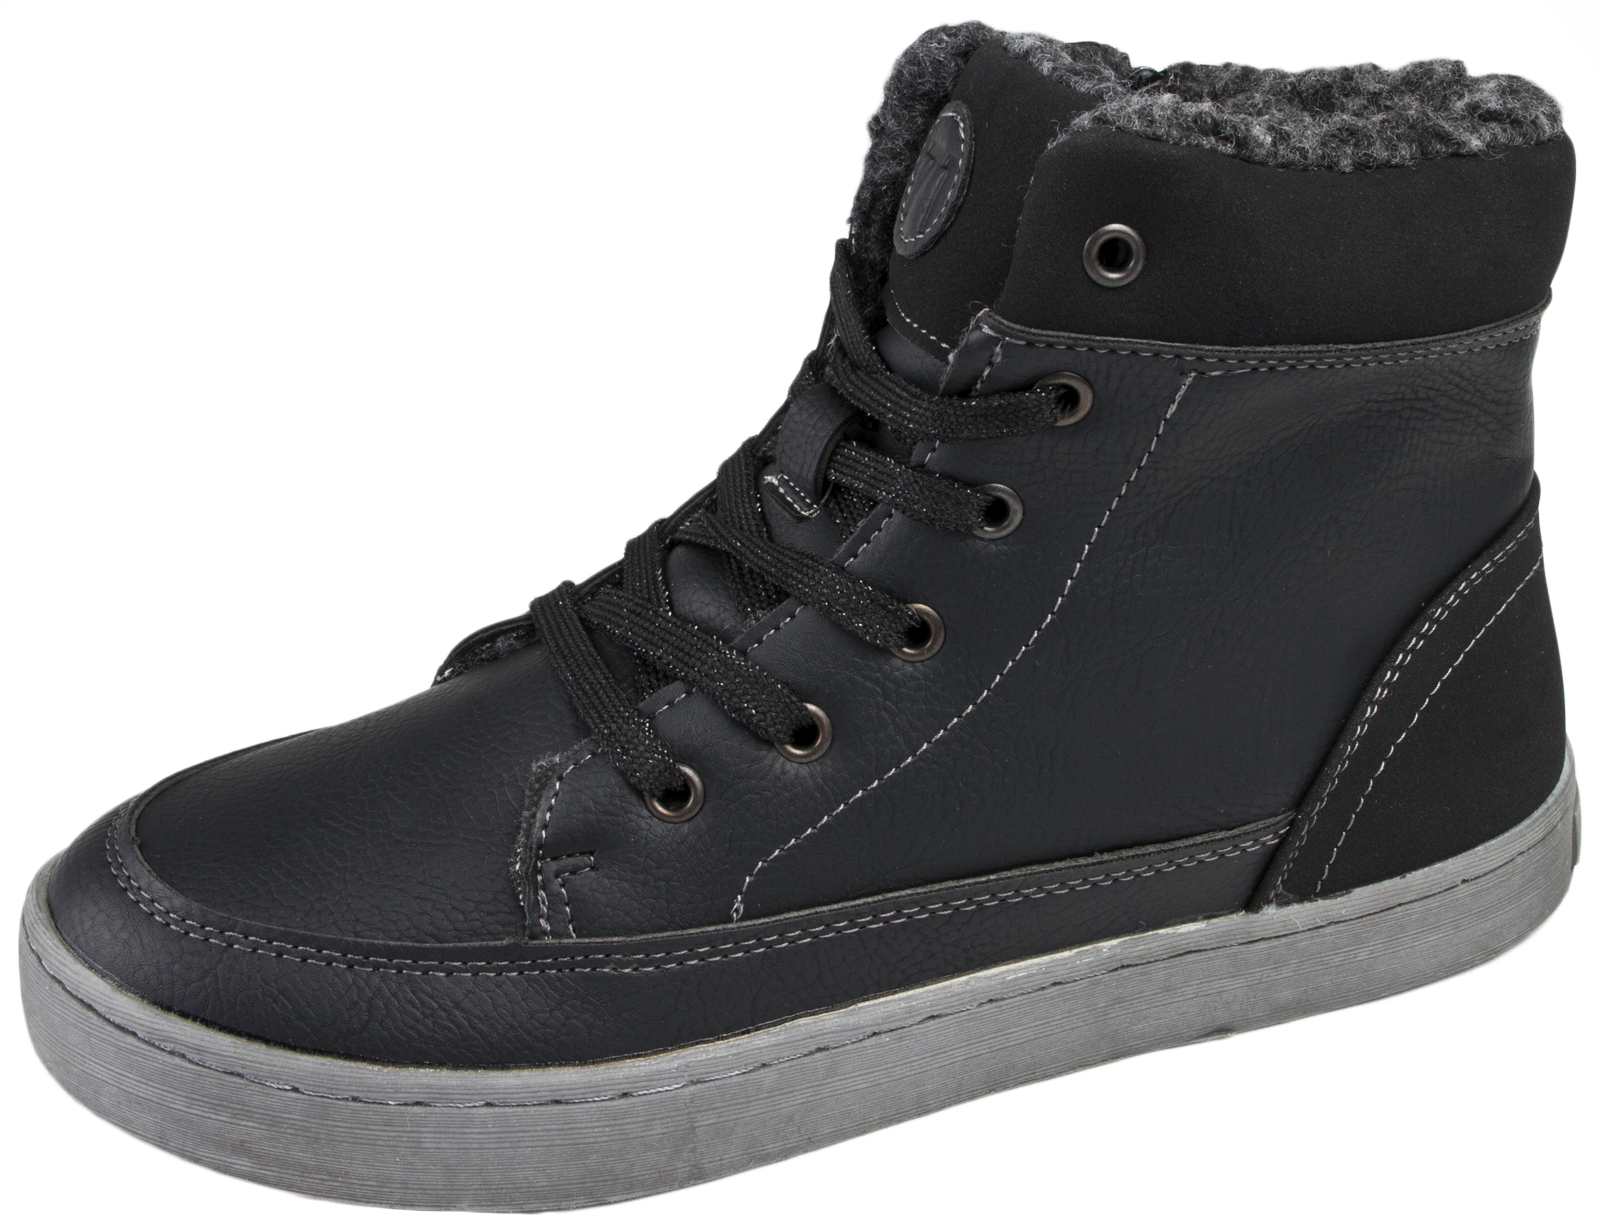 Fleece Lined Hi Tops Ankle Boots